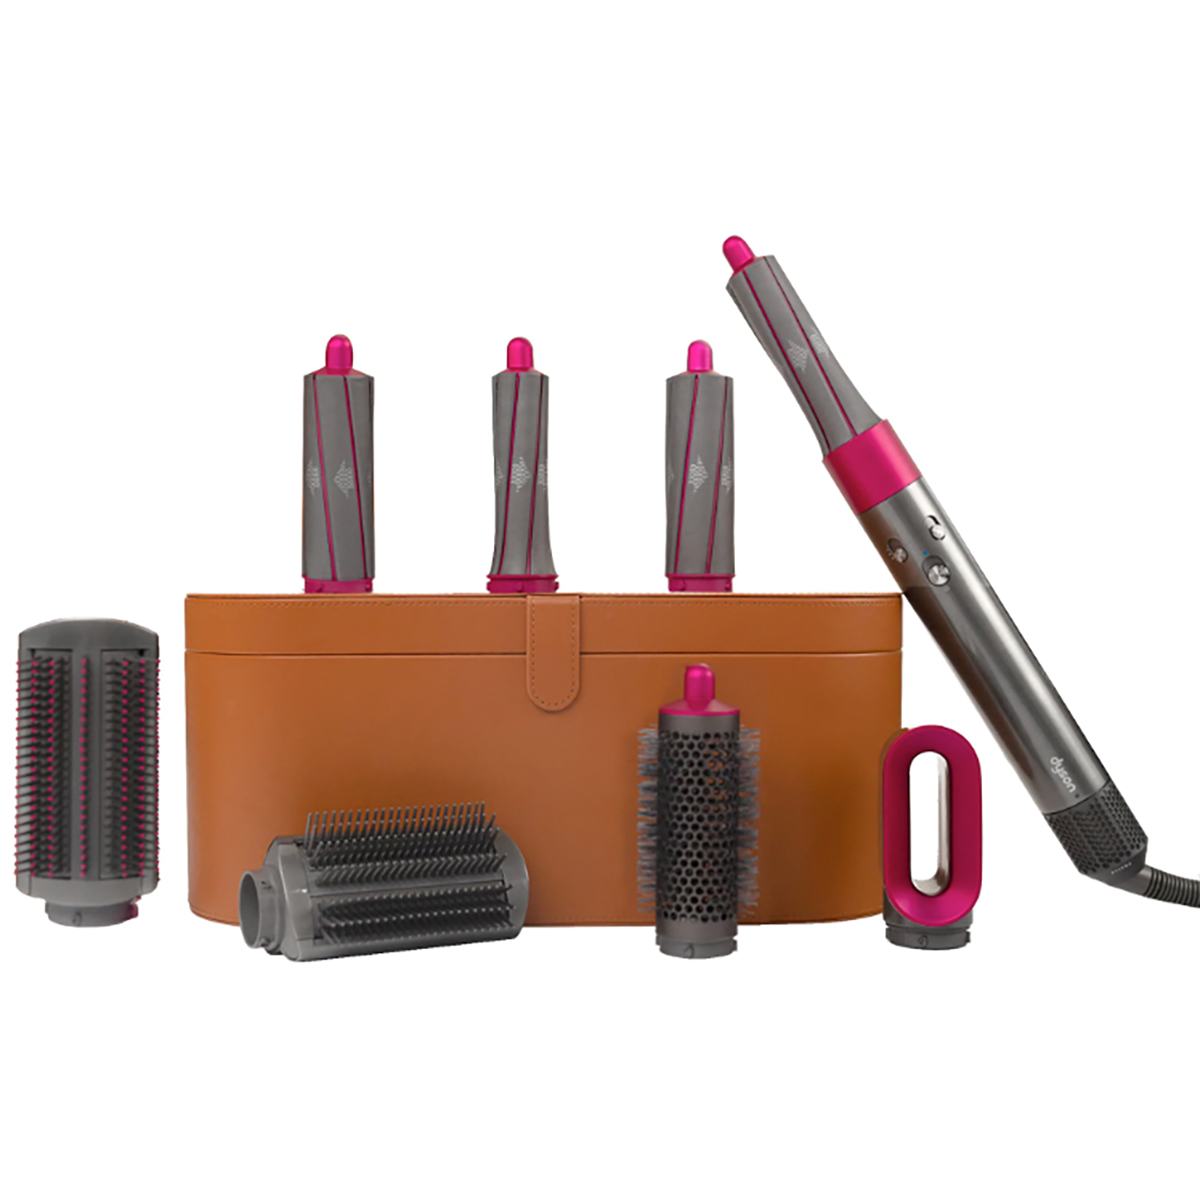 Dyson Airwrap Styler Curling Iron